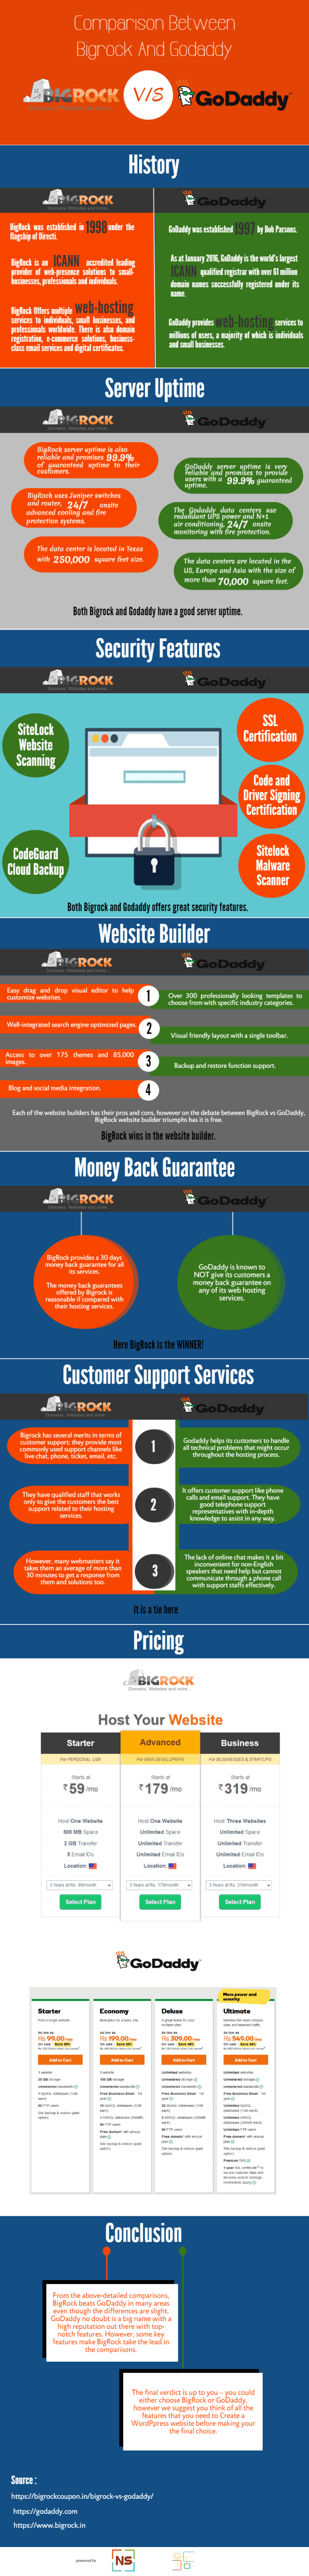 Comparision Between BigRock And GoDaddy